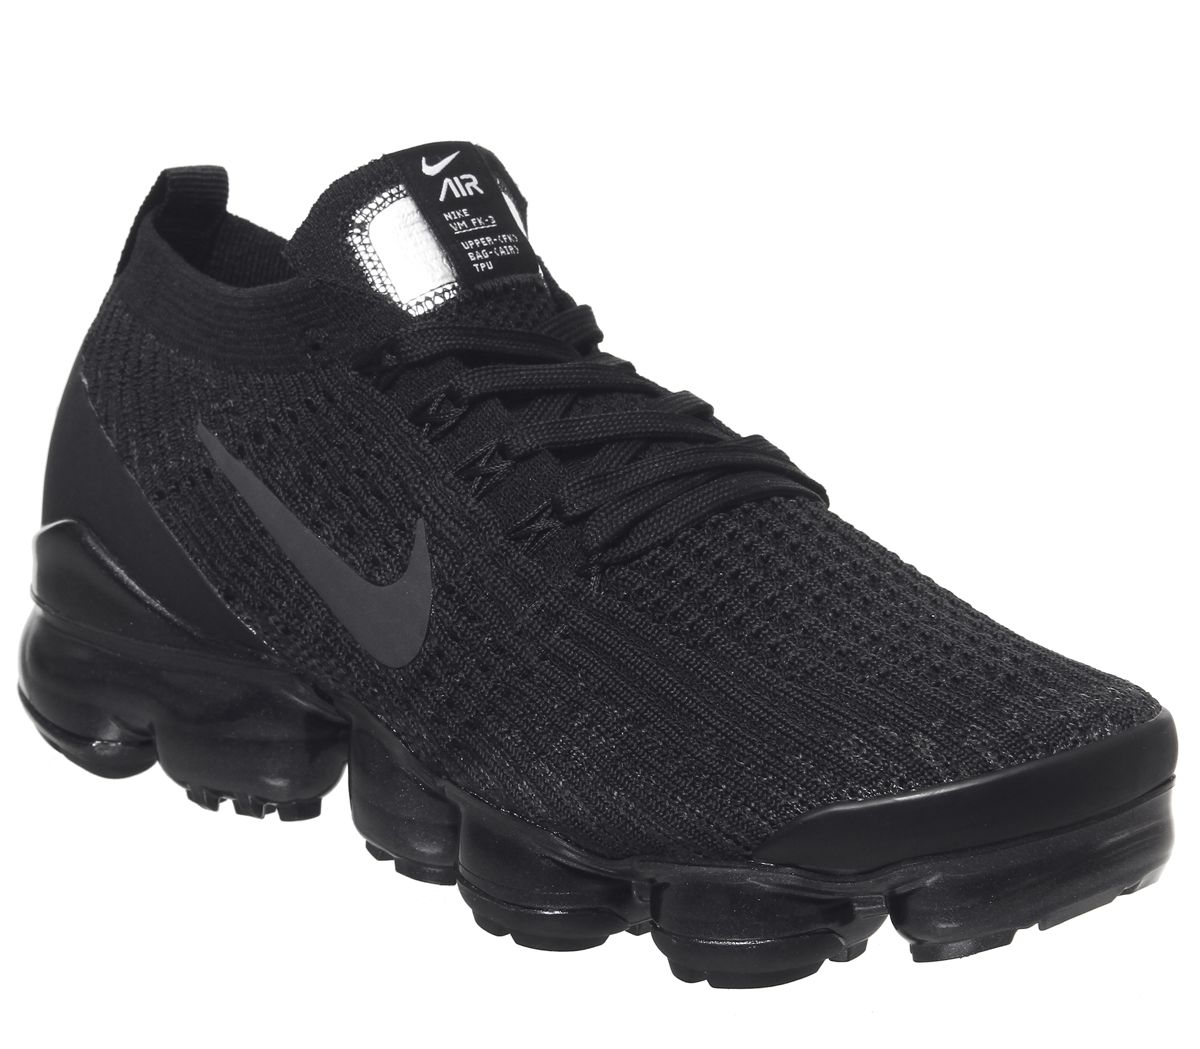 huge selection of 400f3 0cec0 Air Vapormax Fk 3 Trainers